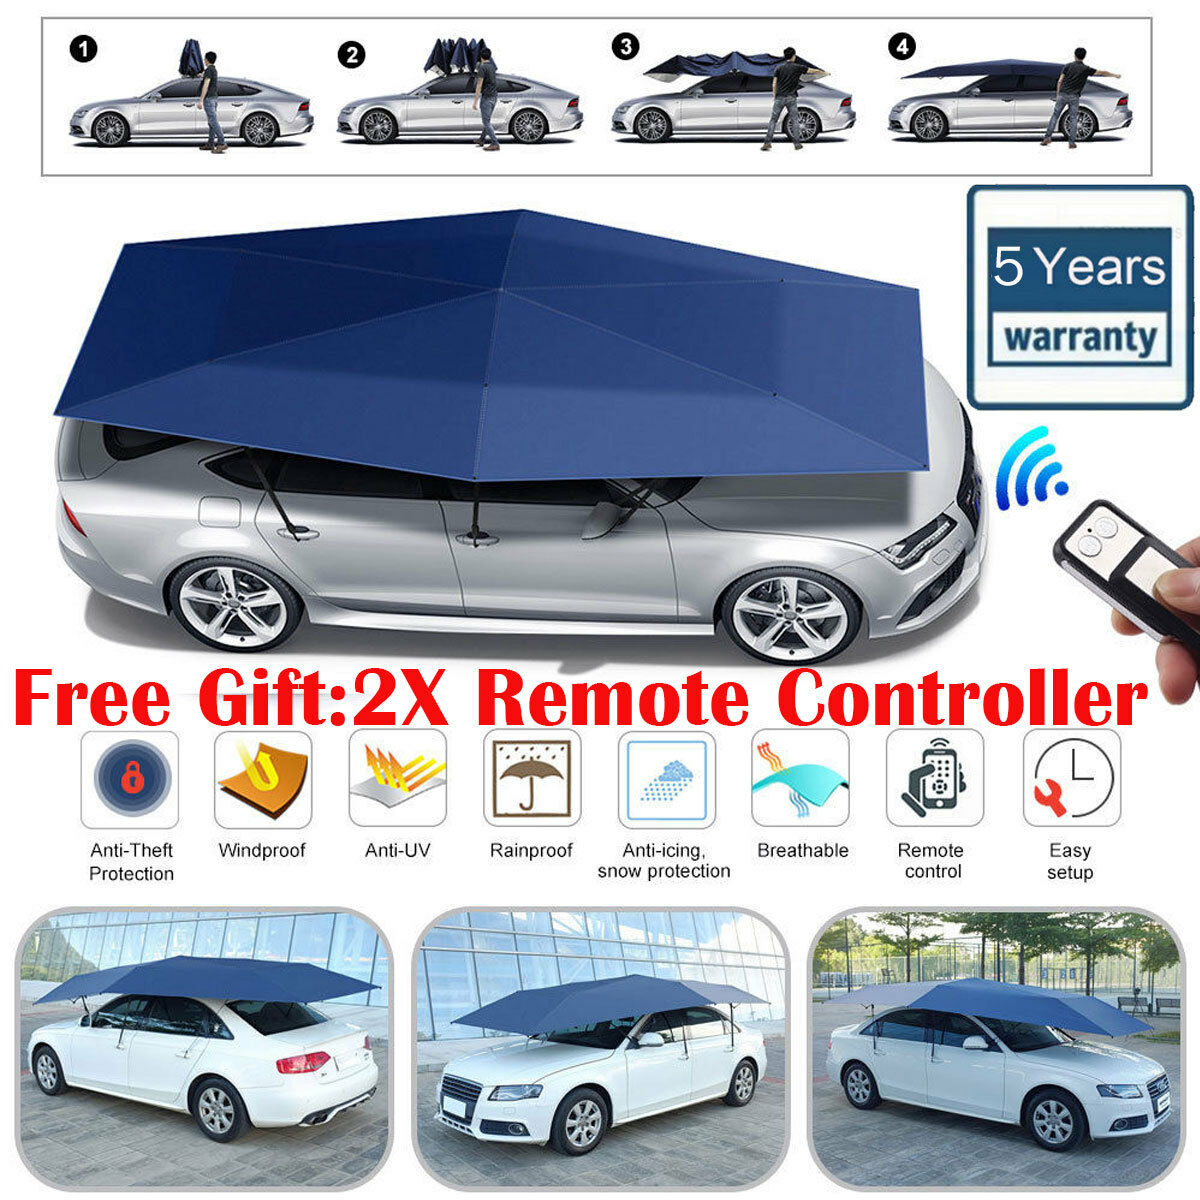 Fully Automatic Portable Anti Uv Protection Car Umbrella Tent Roof